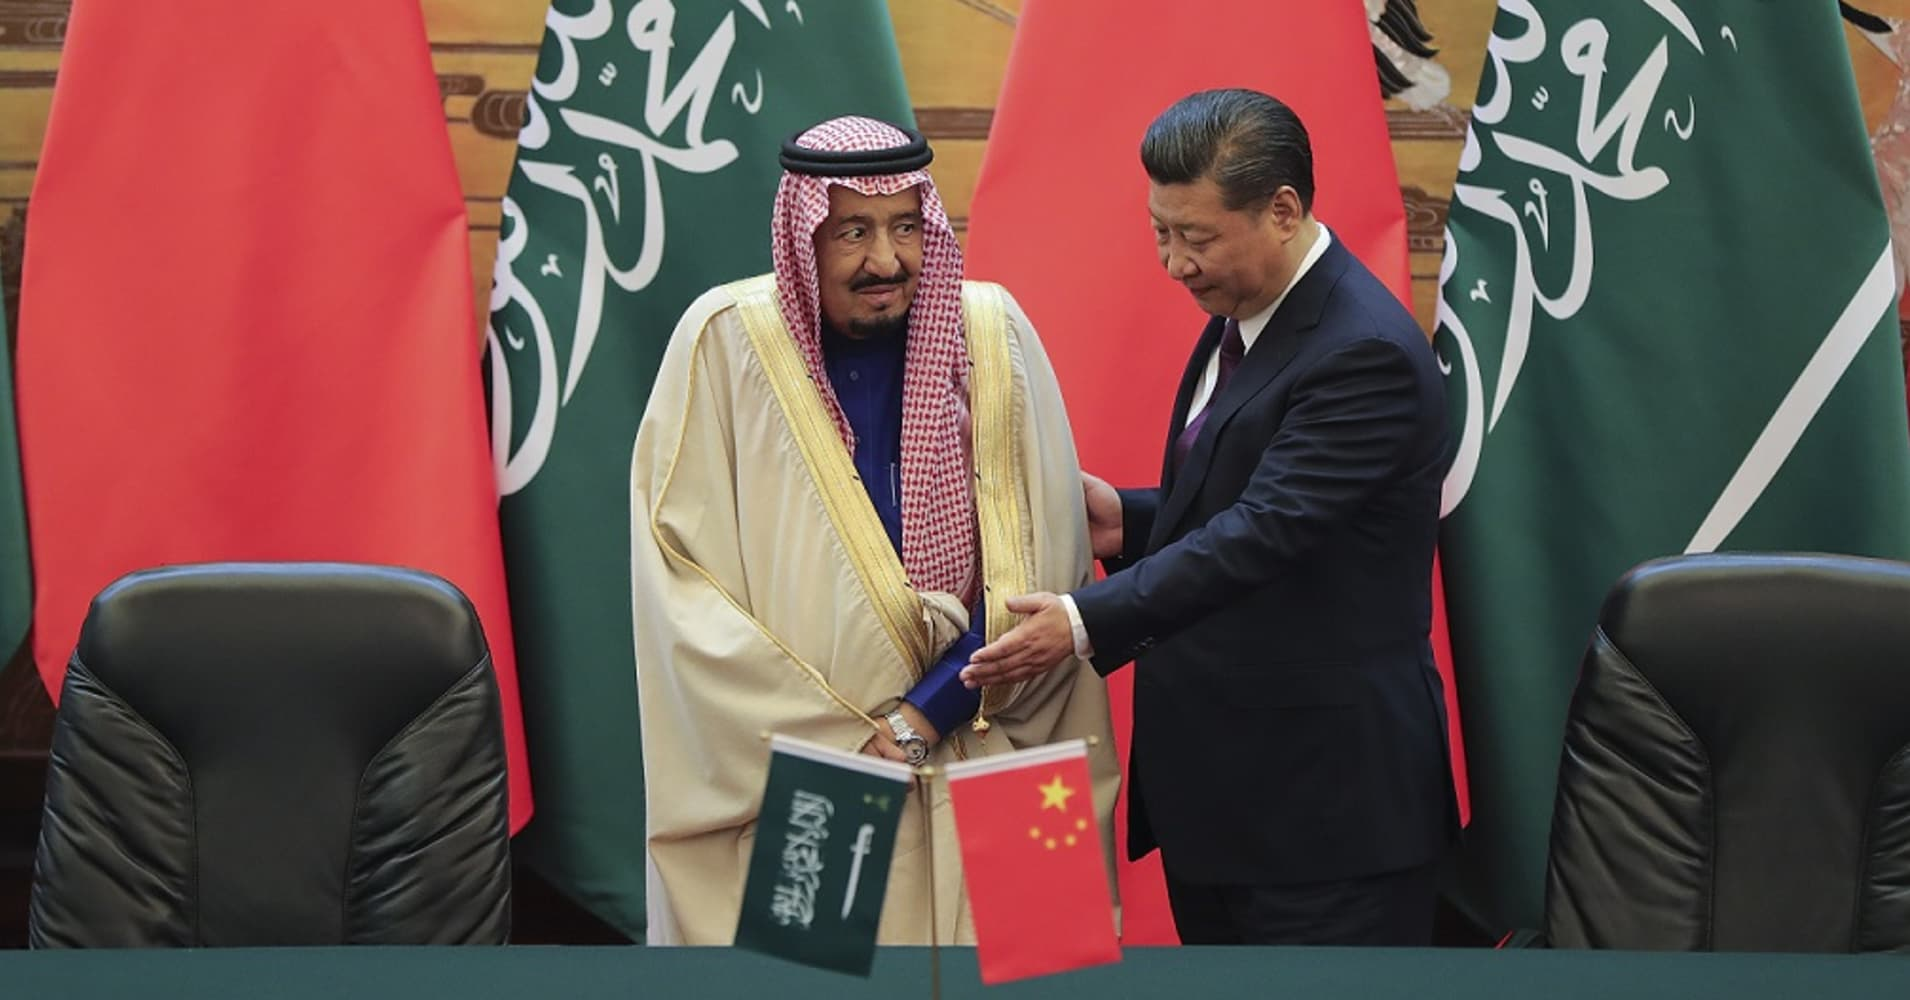 Death of the petrodollar: China will 'compel' Saudi Arabia to trade oil in yuan, and the rest of the oil market is likely to follow suit and abandon the U.S. dollar as the world's reserve currency